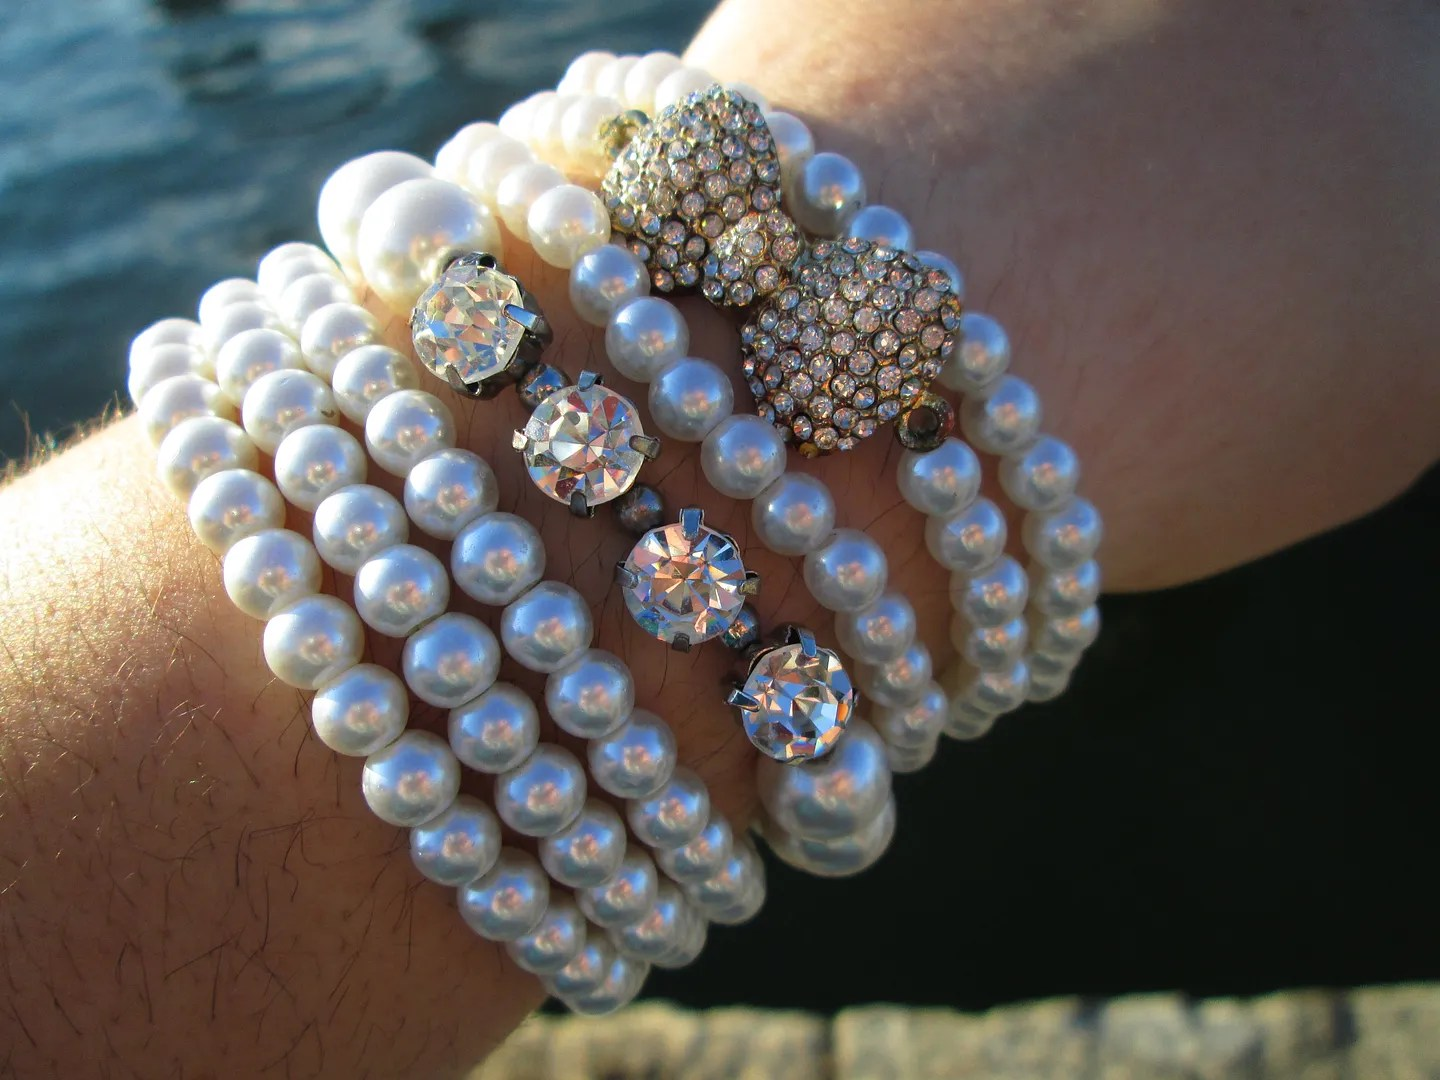 plus size pearl bracelets with rhinestone and bow accents